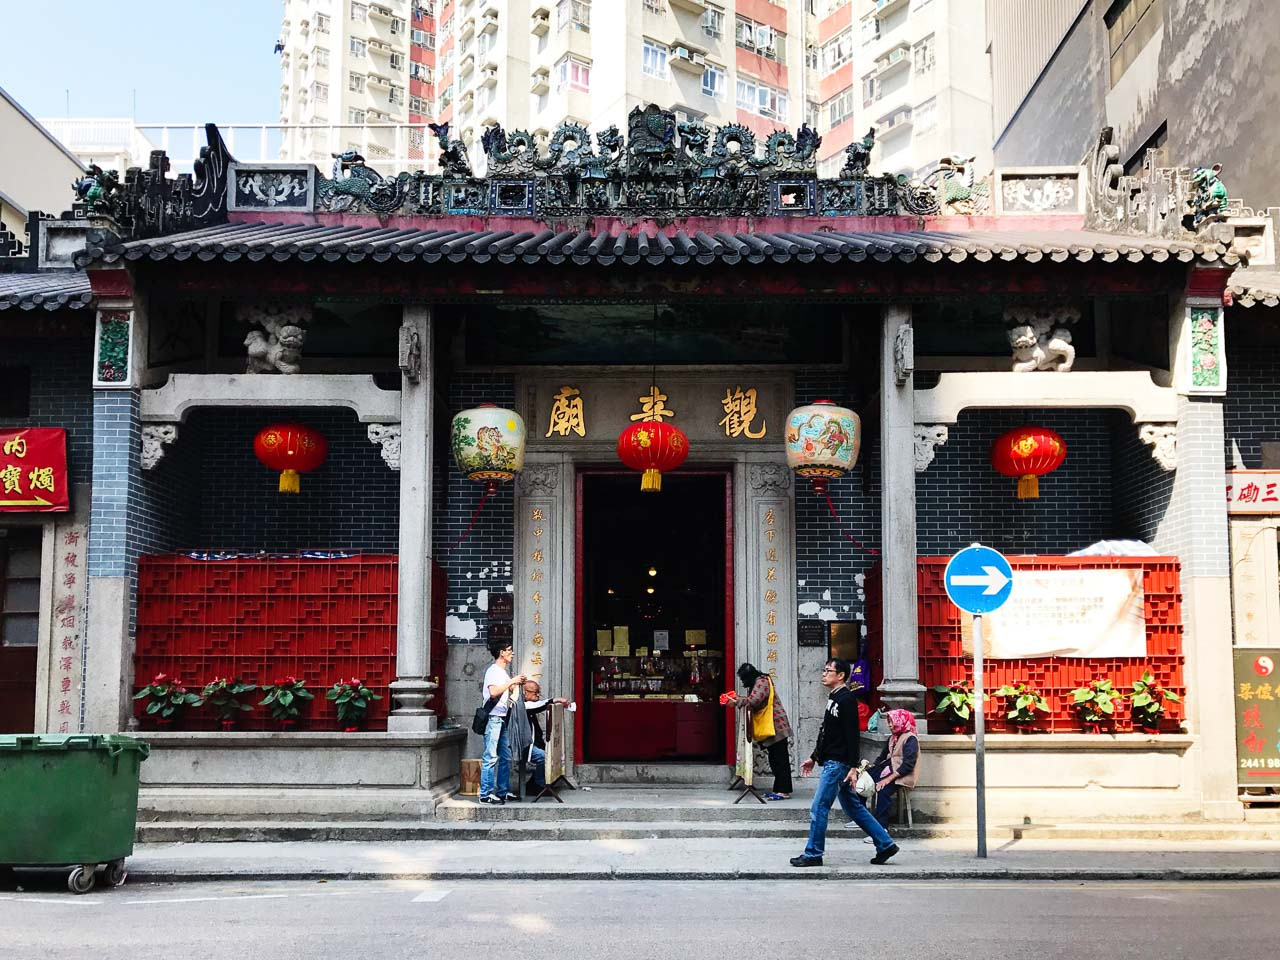 Kwun Yam Temple in Hung Hom, Hong Kong.